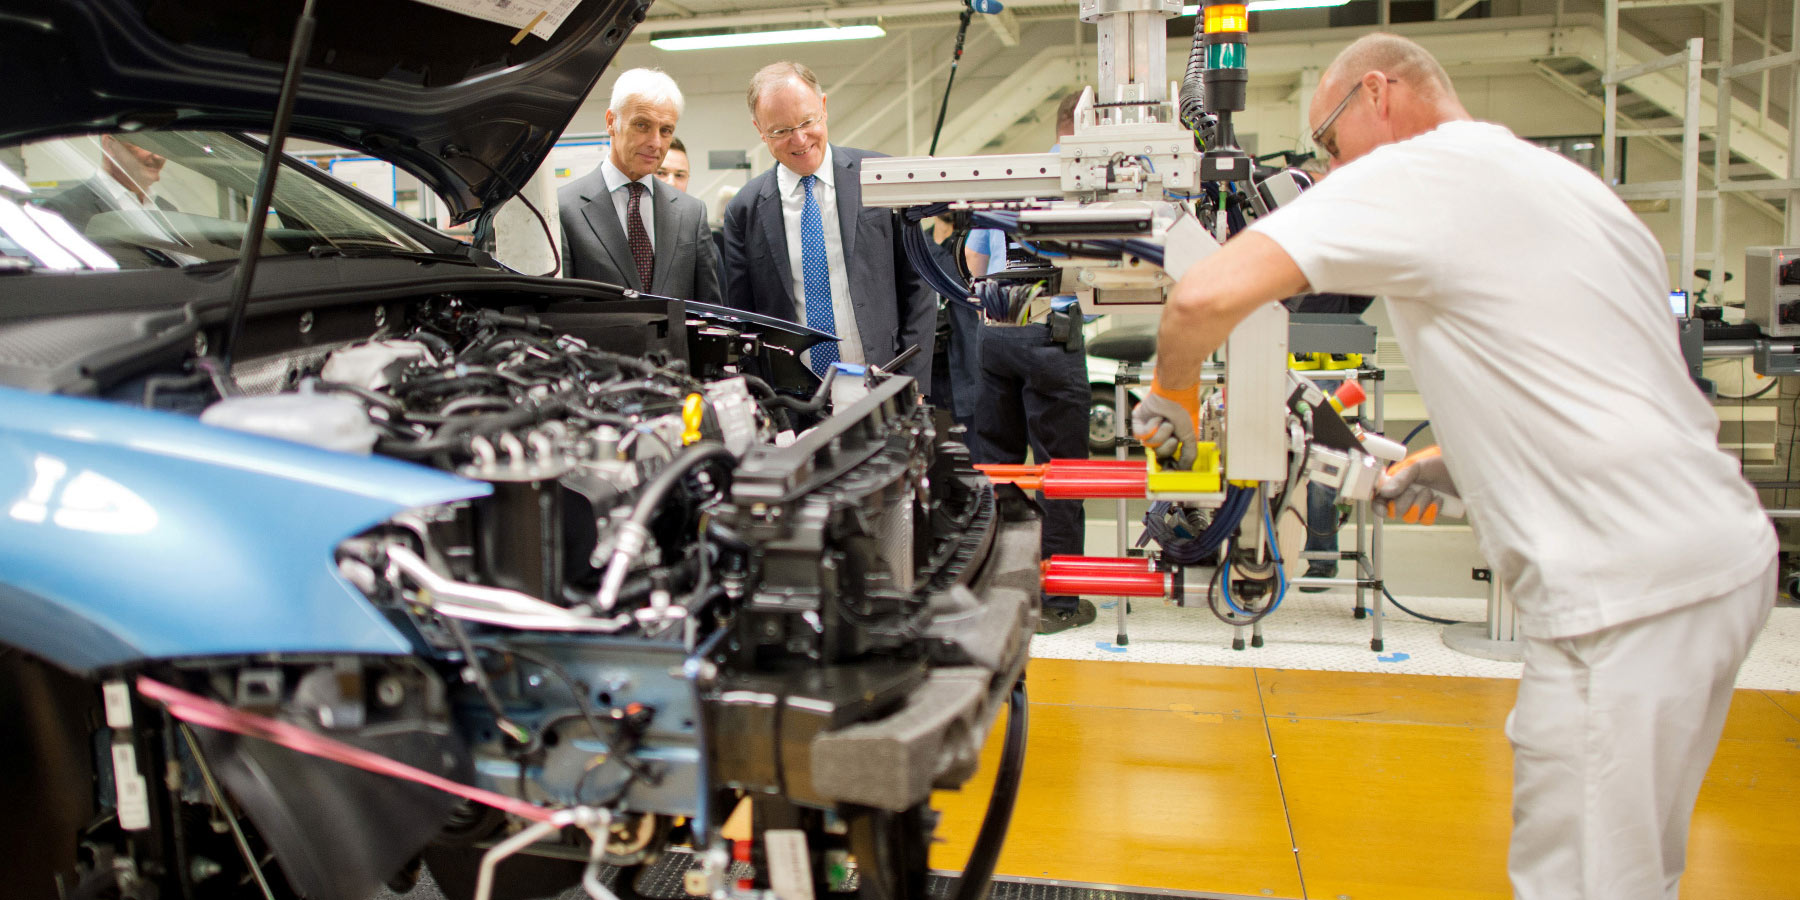 Former VW CEO Matthias Müller (left) and Stephan Weil, premier of Lower Saxony, tour a VW factory in 2017